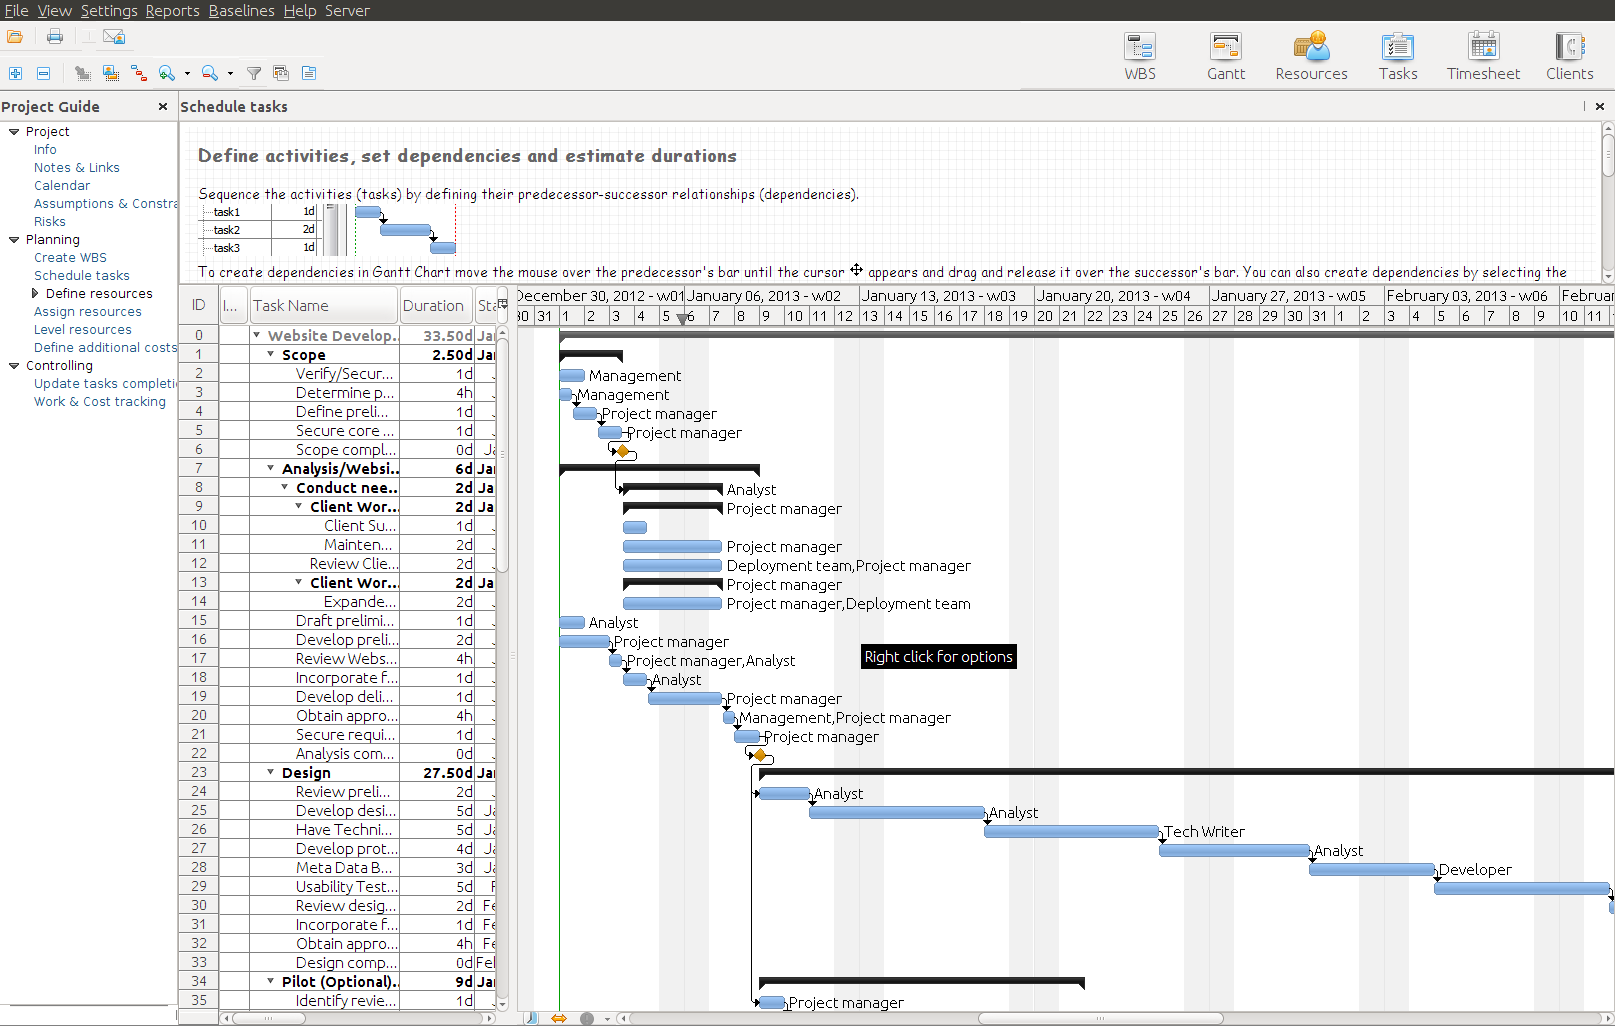 RationalPlan Project Viewer for Linux Screenshot